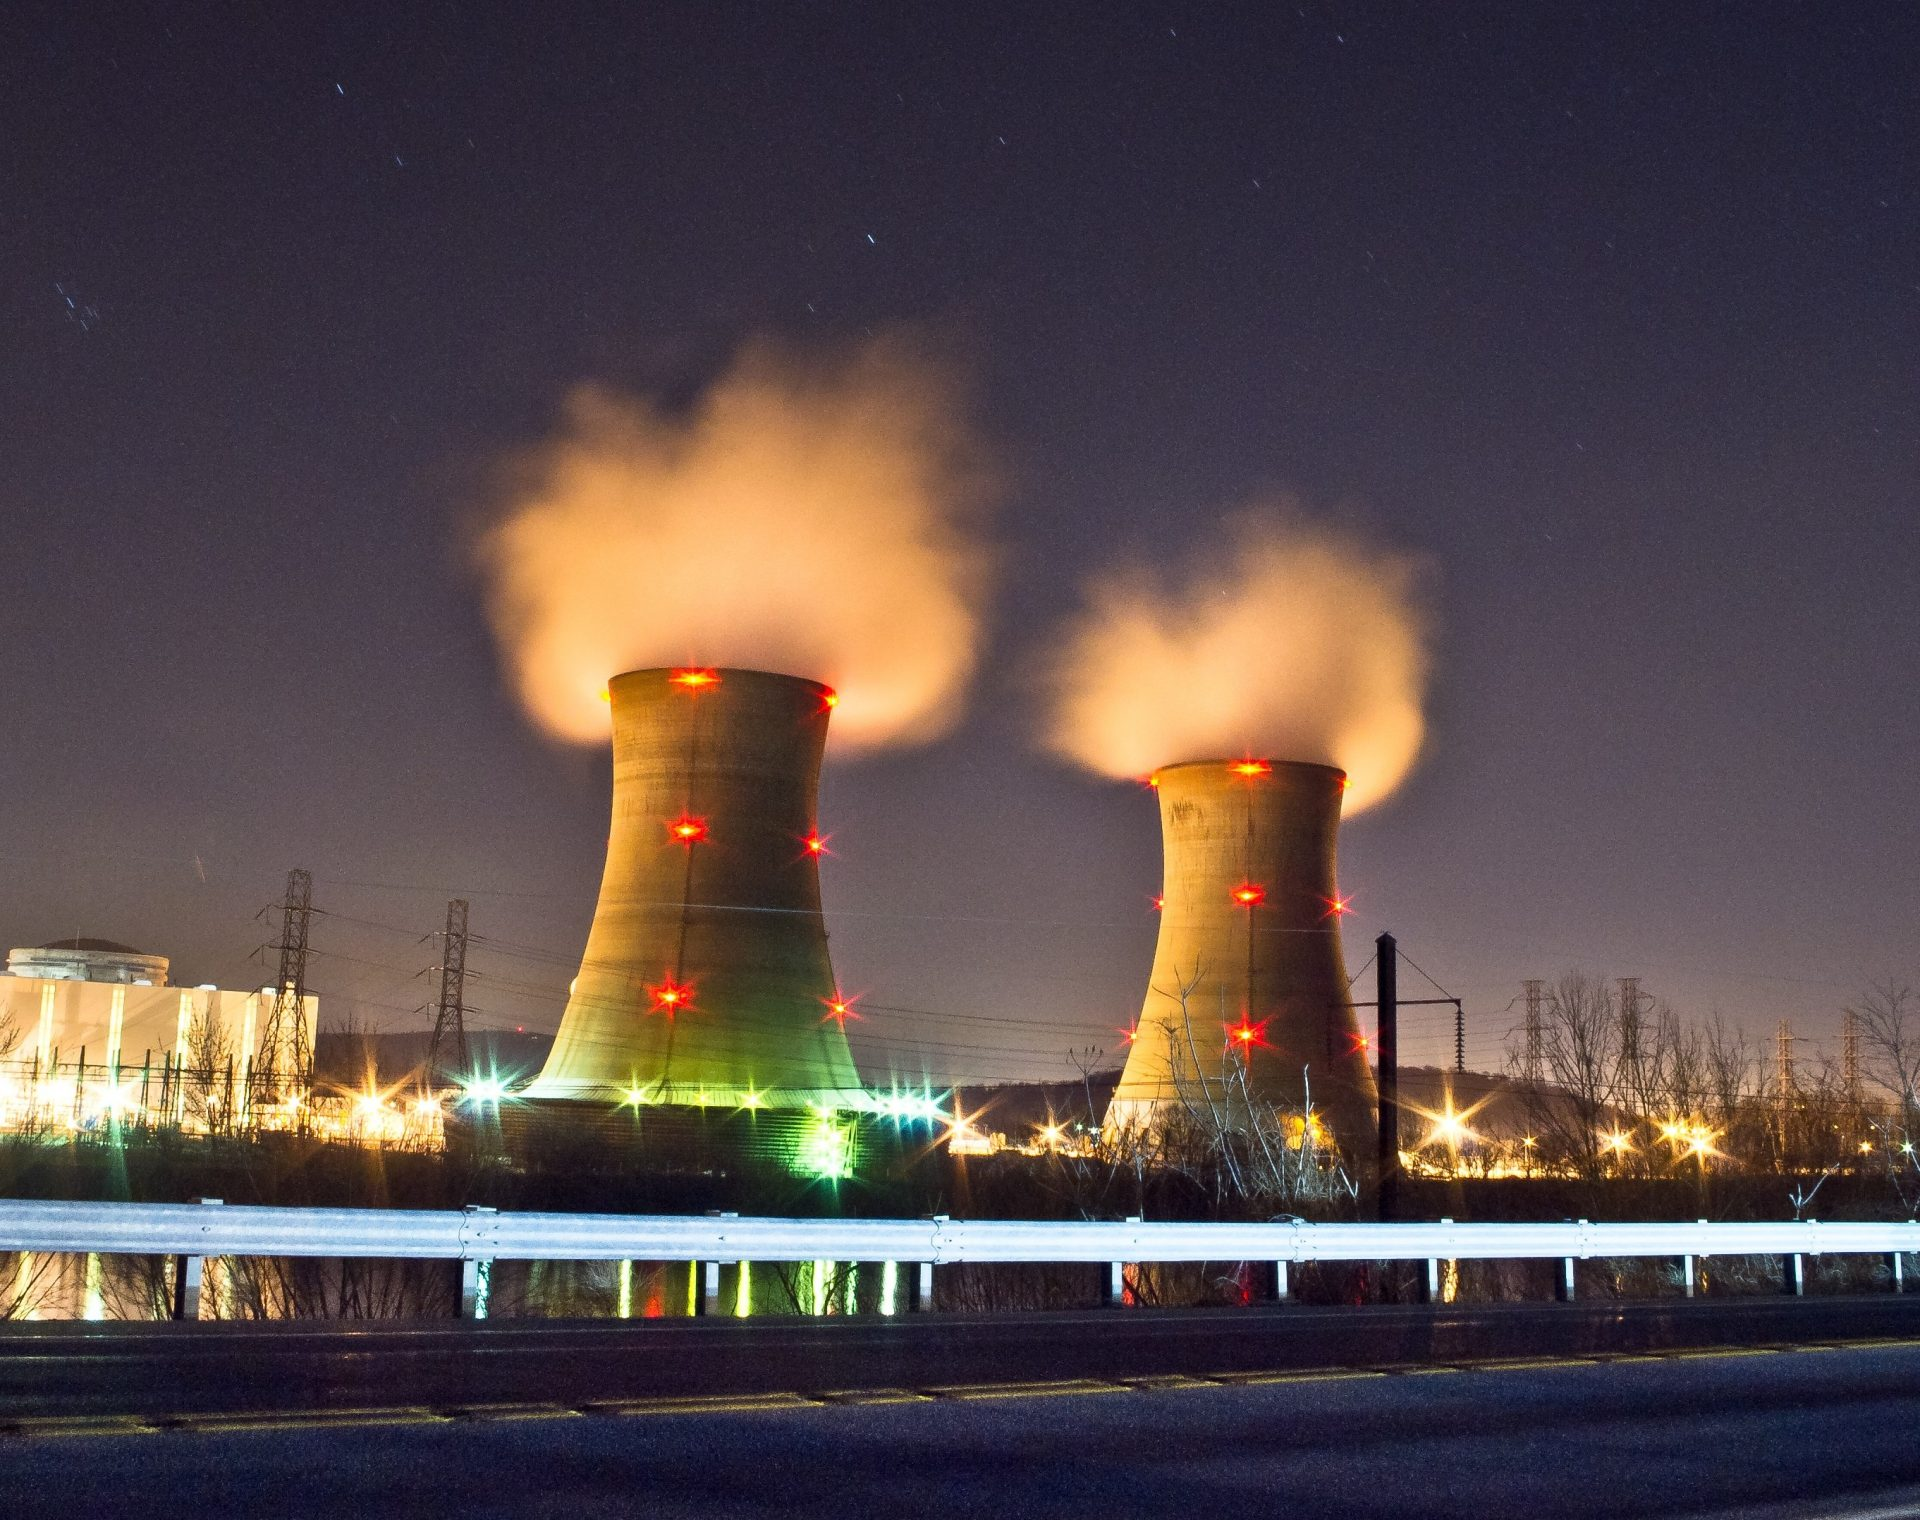 Exelon has said it will close Three Mile Island's Unit One reactor this fall.